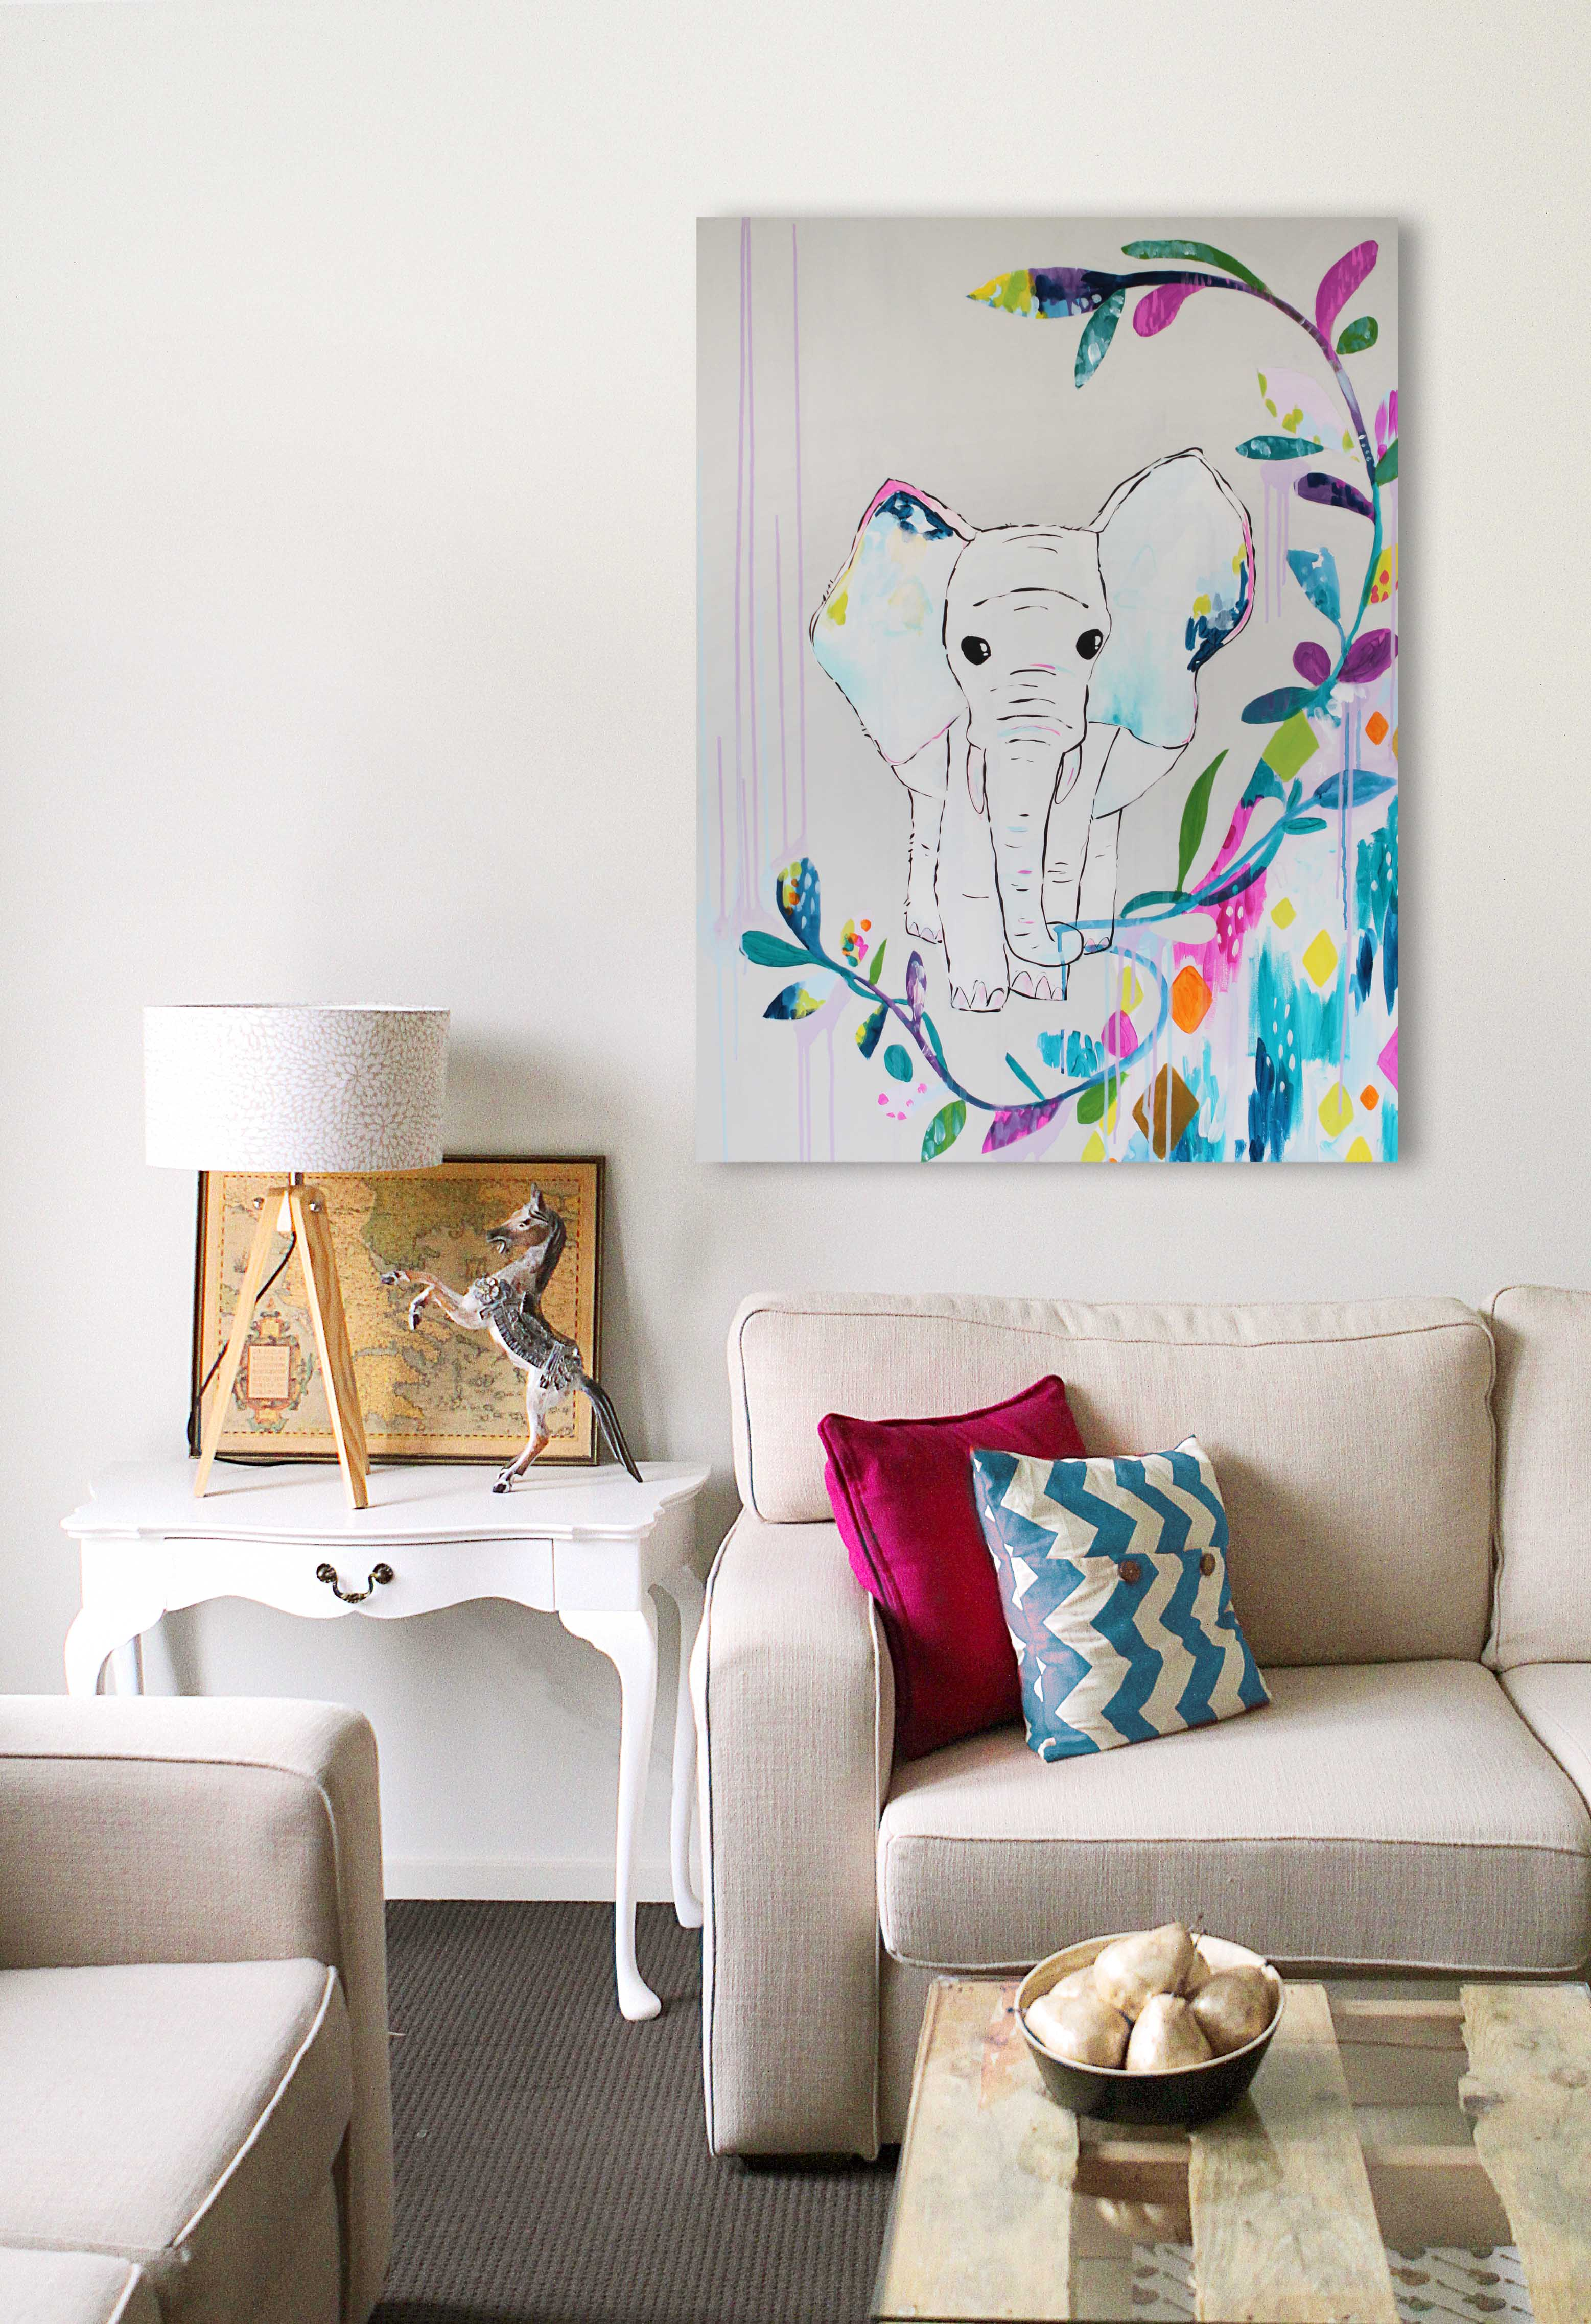 original paintings for sale artworks animal deer horse elephant illustration artist sail and swan melbourne adelaide perth australia colourful bright gold grey blue turquoise